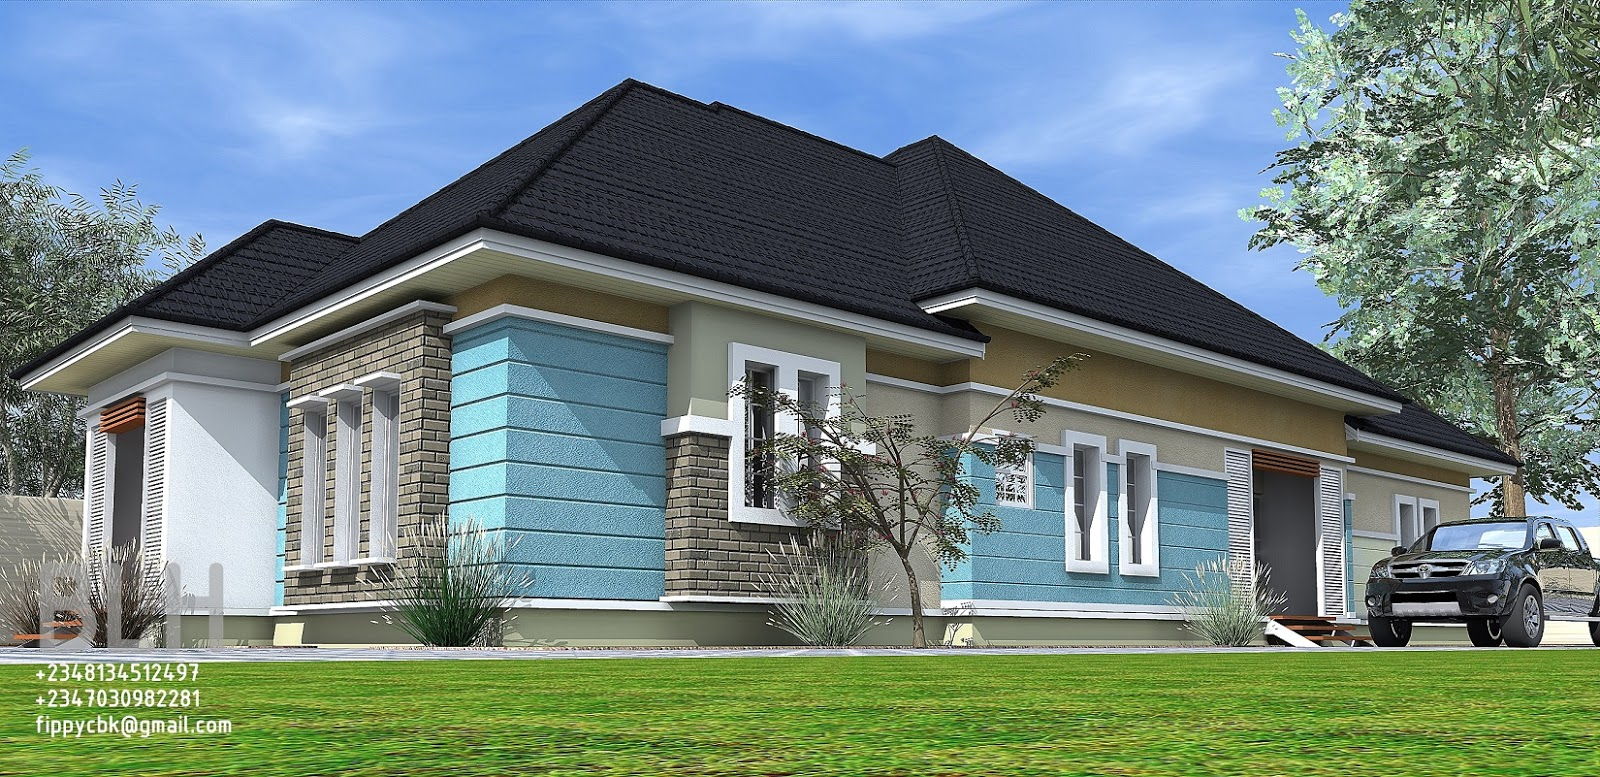 Architectural designs by blacklakehouse 4 bedroom bungalow for 3 bedroom bungalow plans